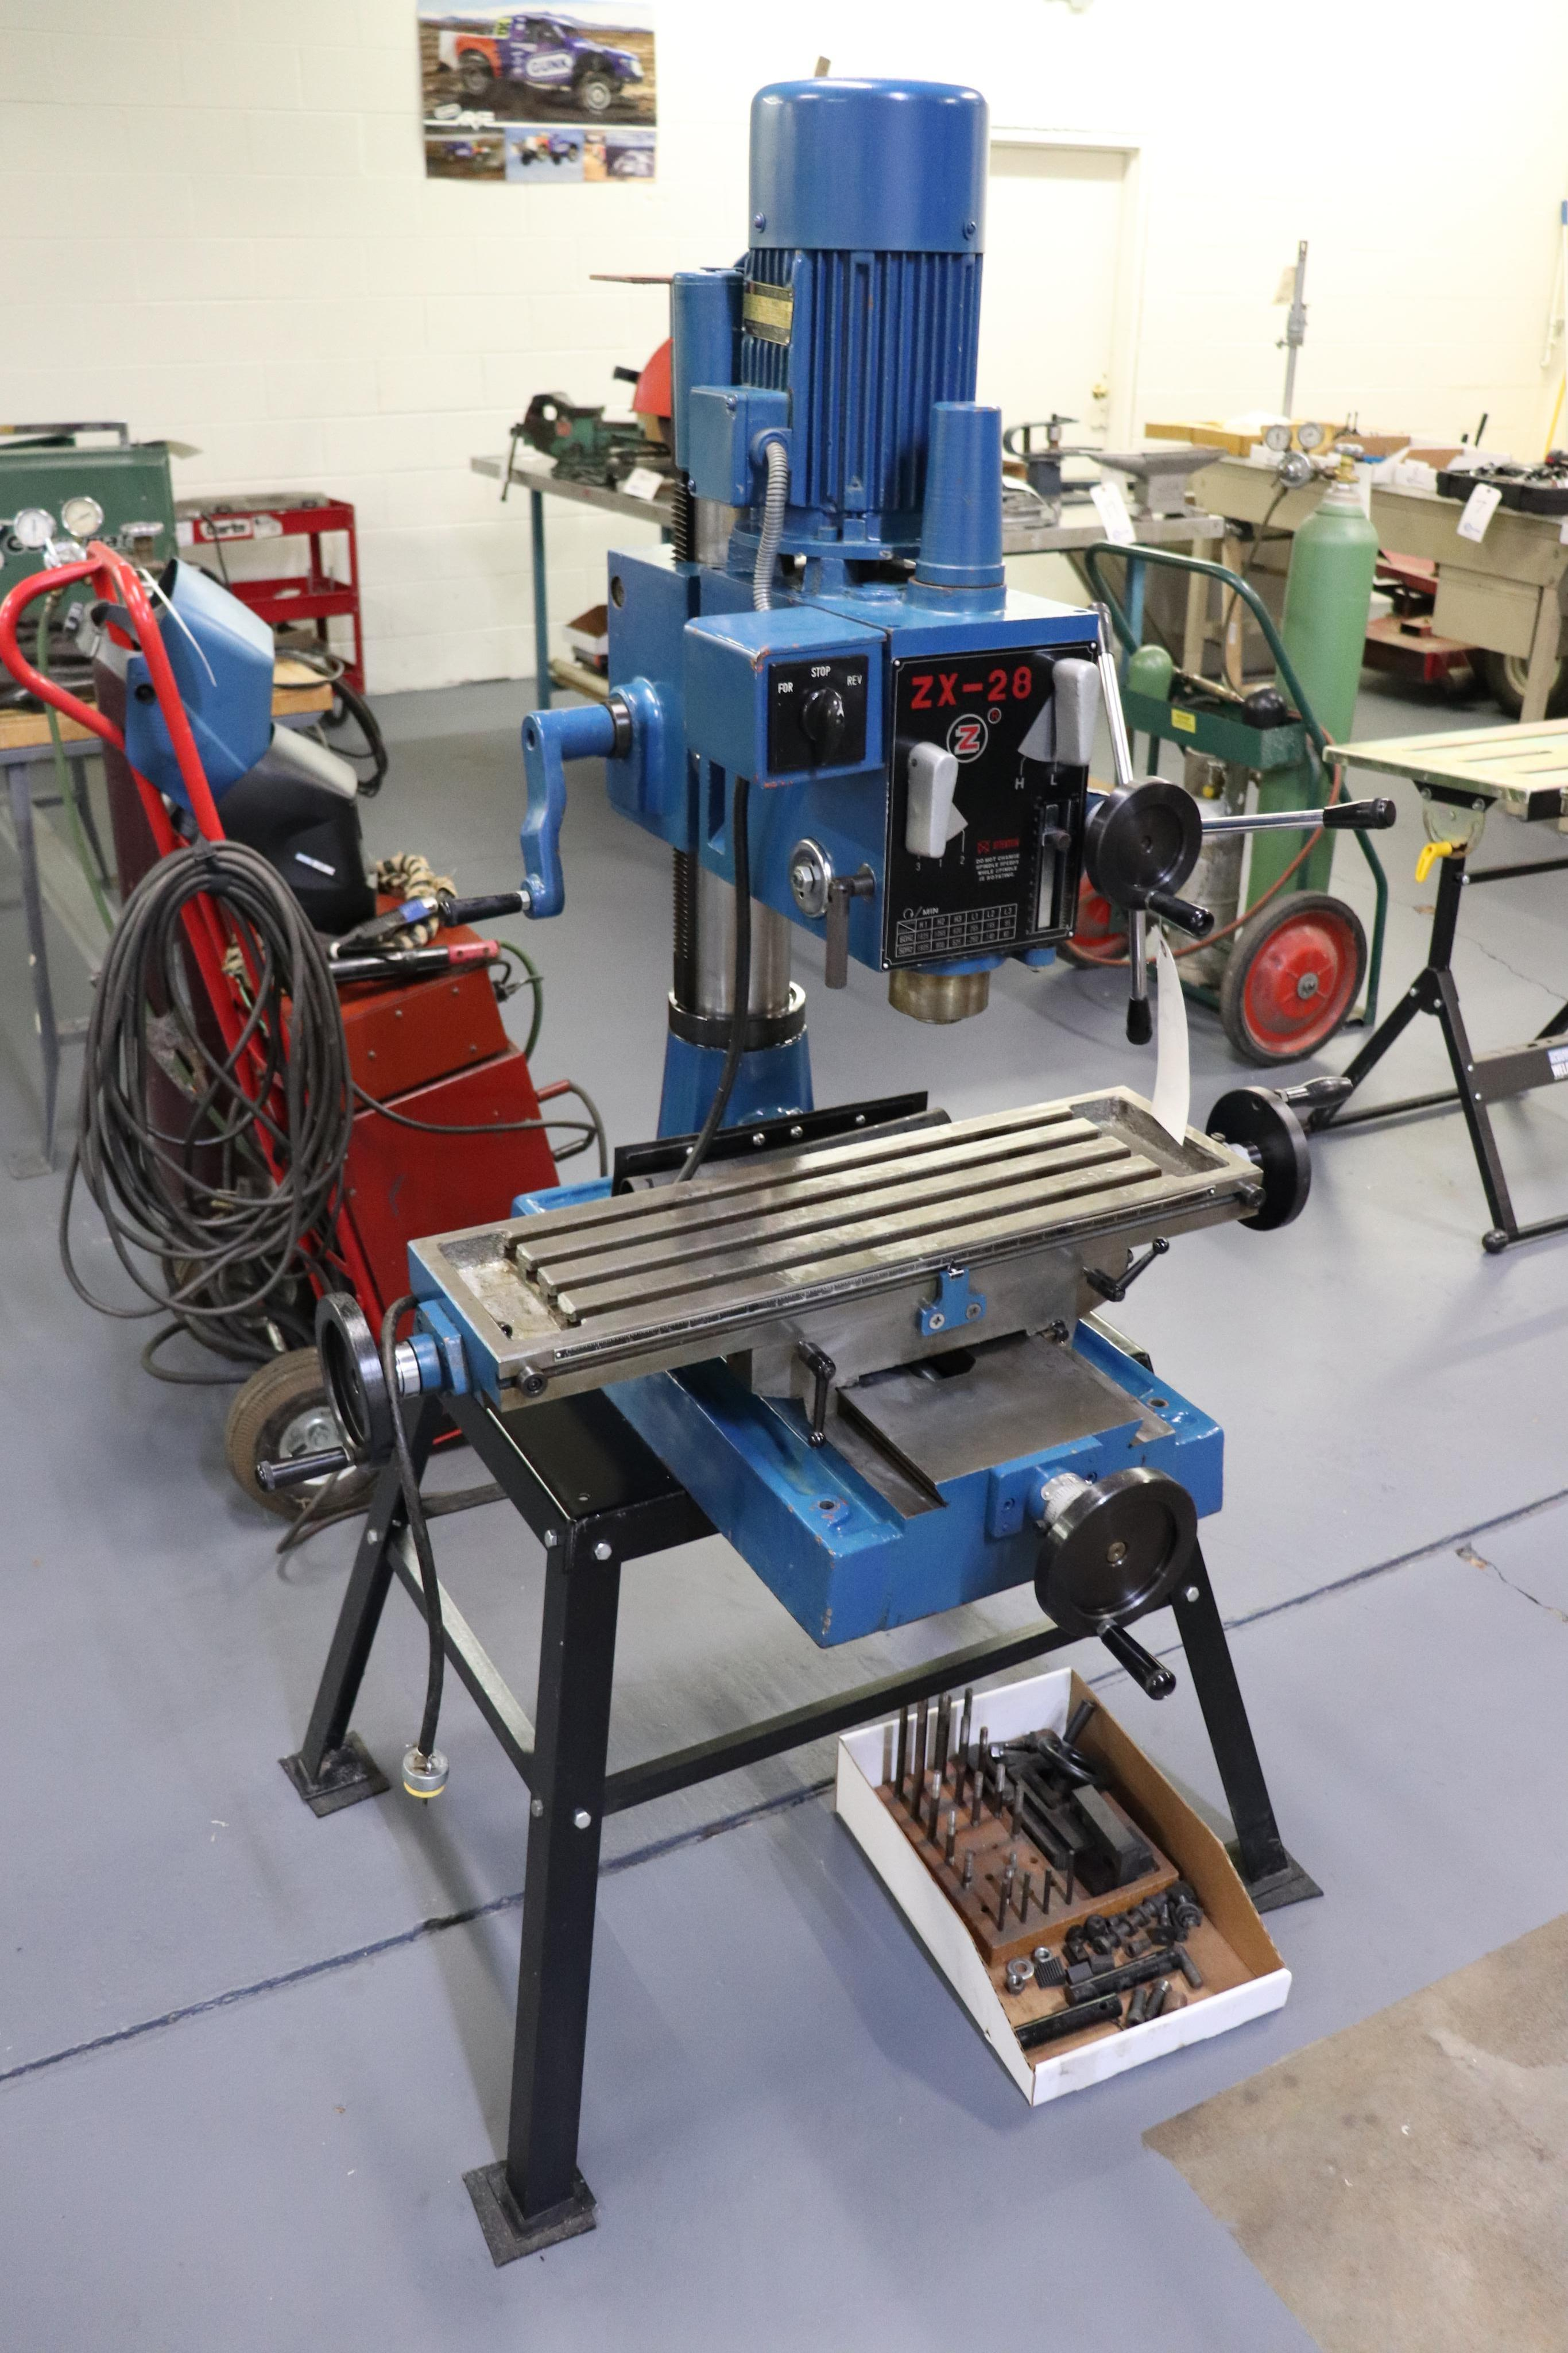 Motor-Car Gear Factory ZX-28 vertical milling machine - Image 2 of 7